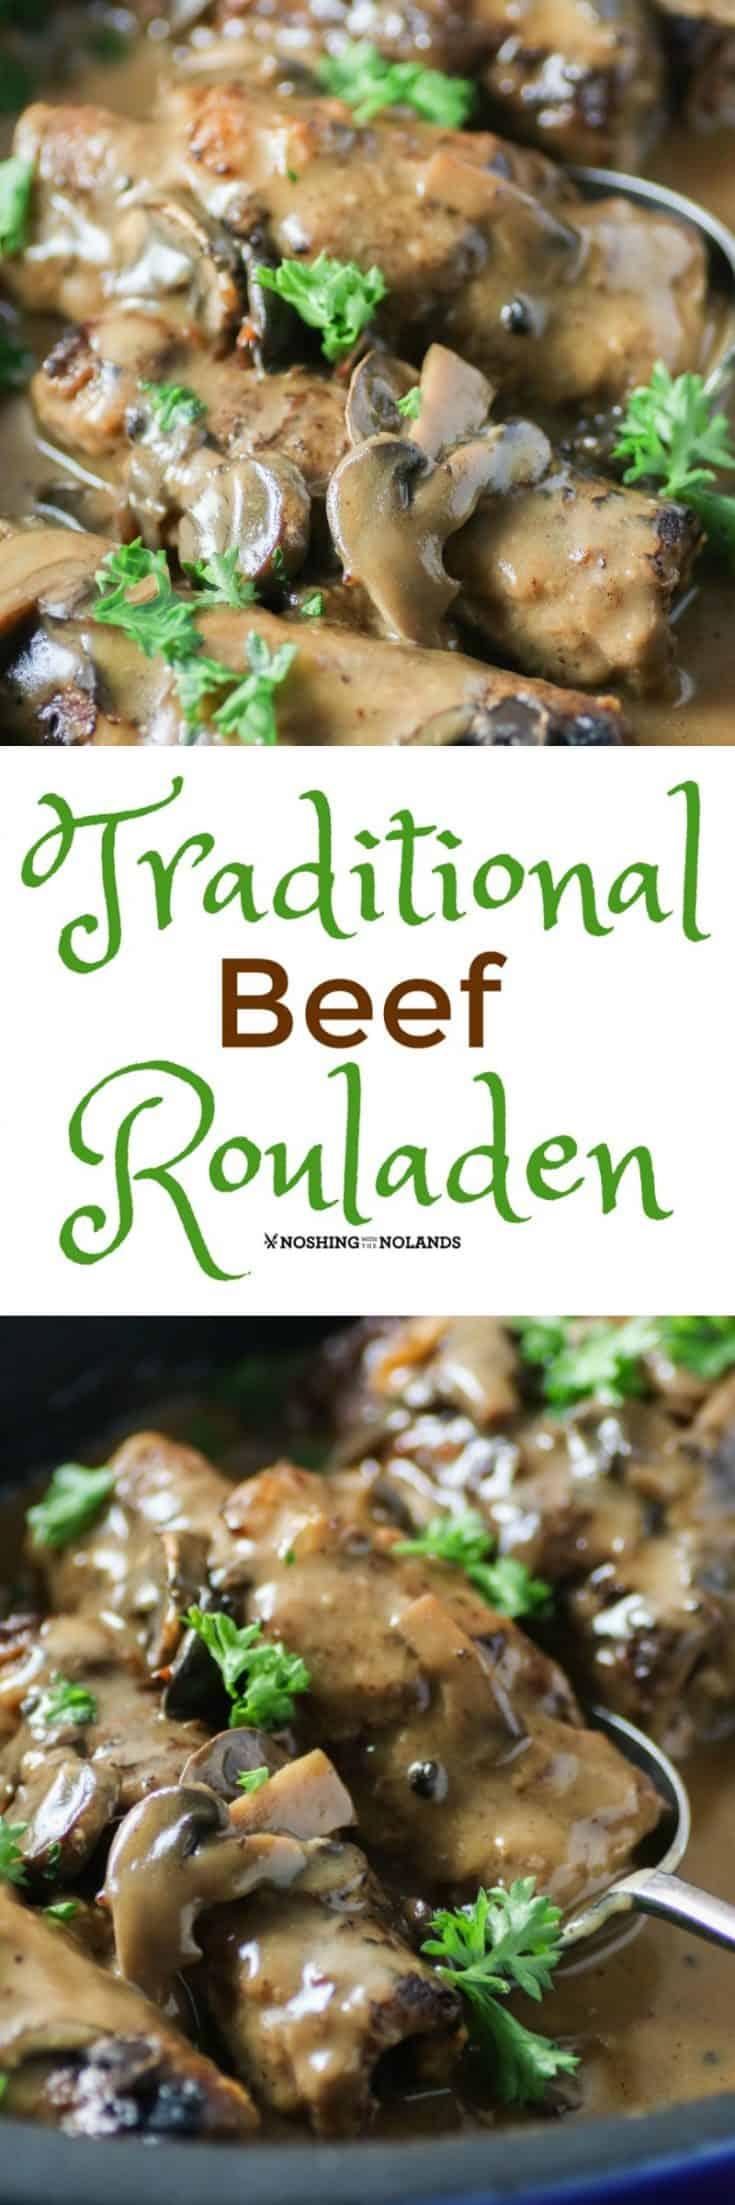 Traditional Beef Rouladen is full of flavor and pure comfort food! #beefrouladen #rouladen #German